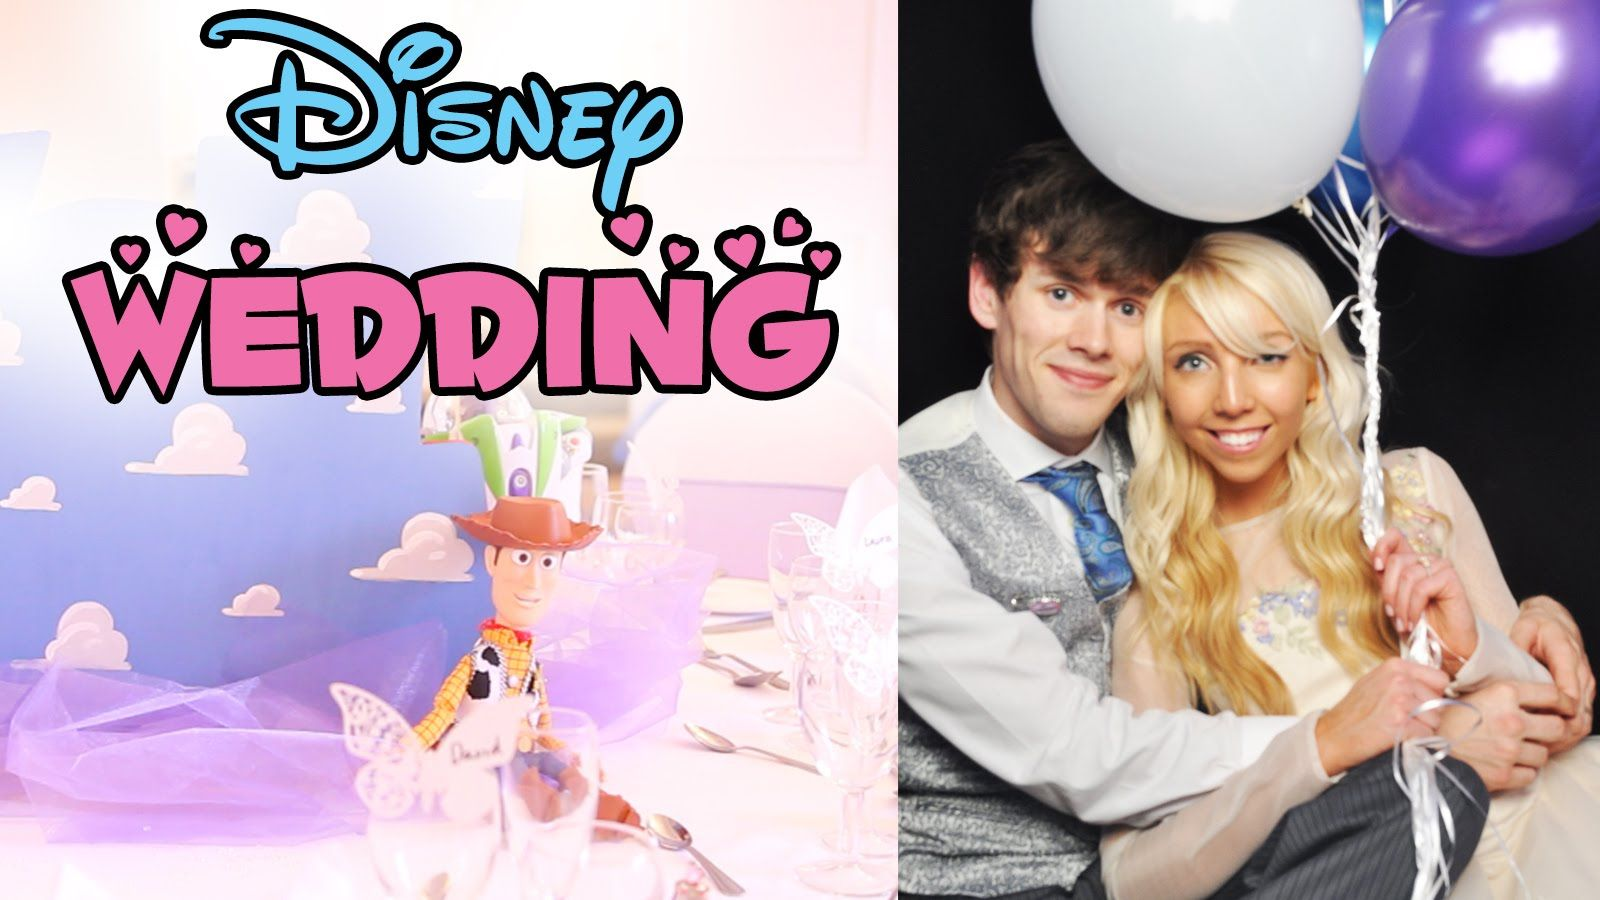 Disney wedding dresses jasmine  Our Disney Wedding  Jamie Jo  Wedding  Pinterest  Wedding and